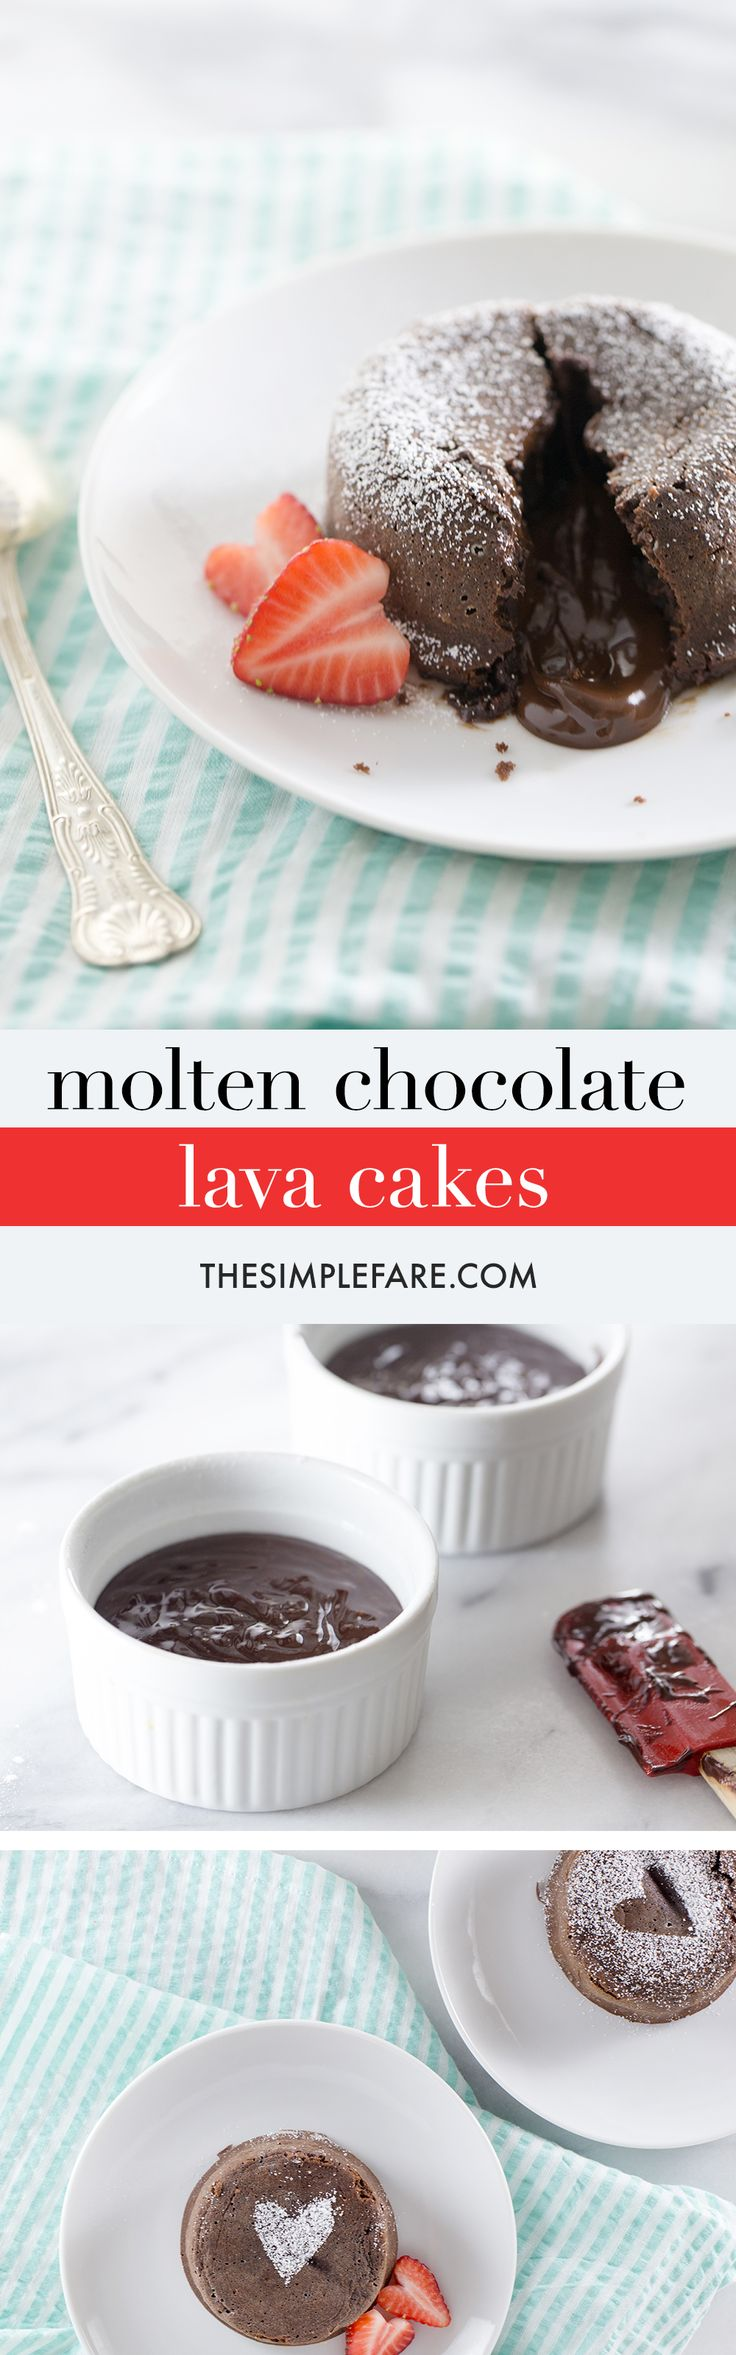 Make this impressive Chocolate Lava Cake recipe in under 30 minutes. This chocolate cake is rich and moist, with the perfect gooey filling inside.